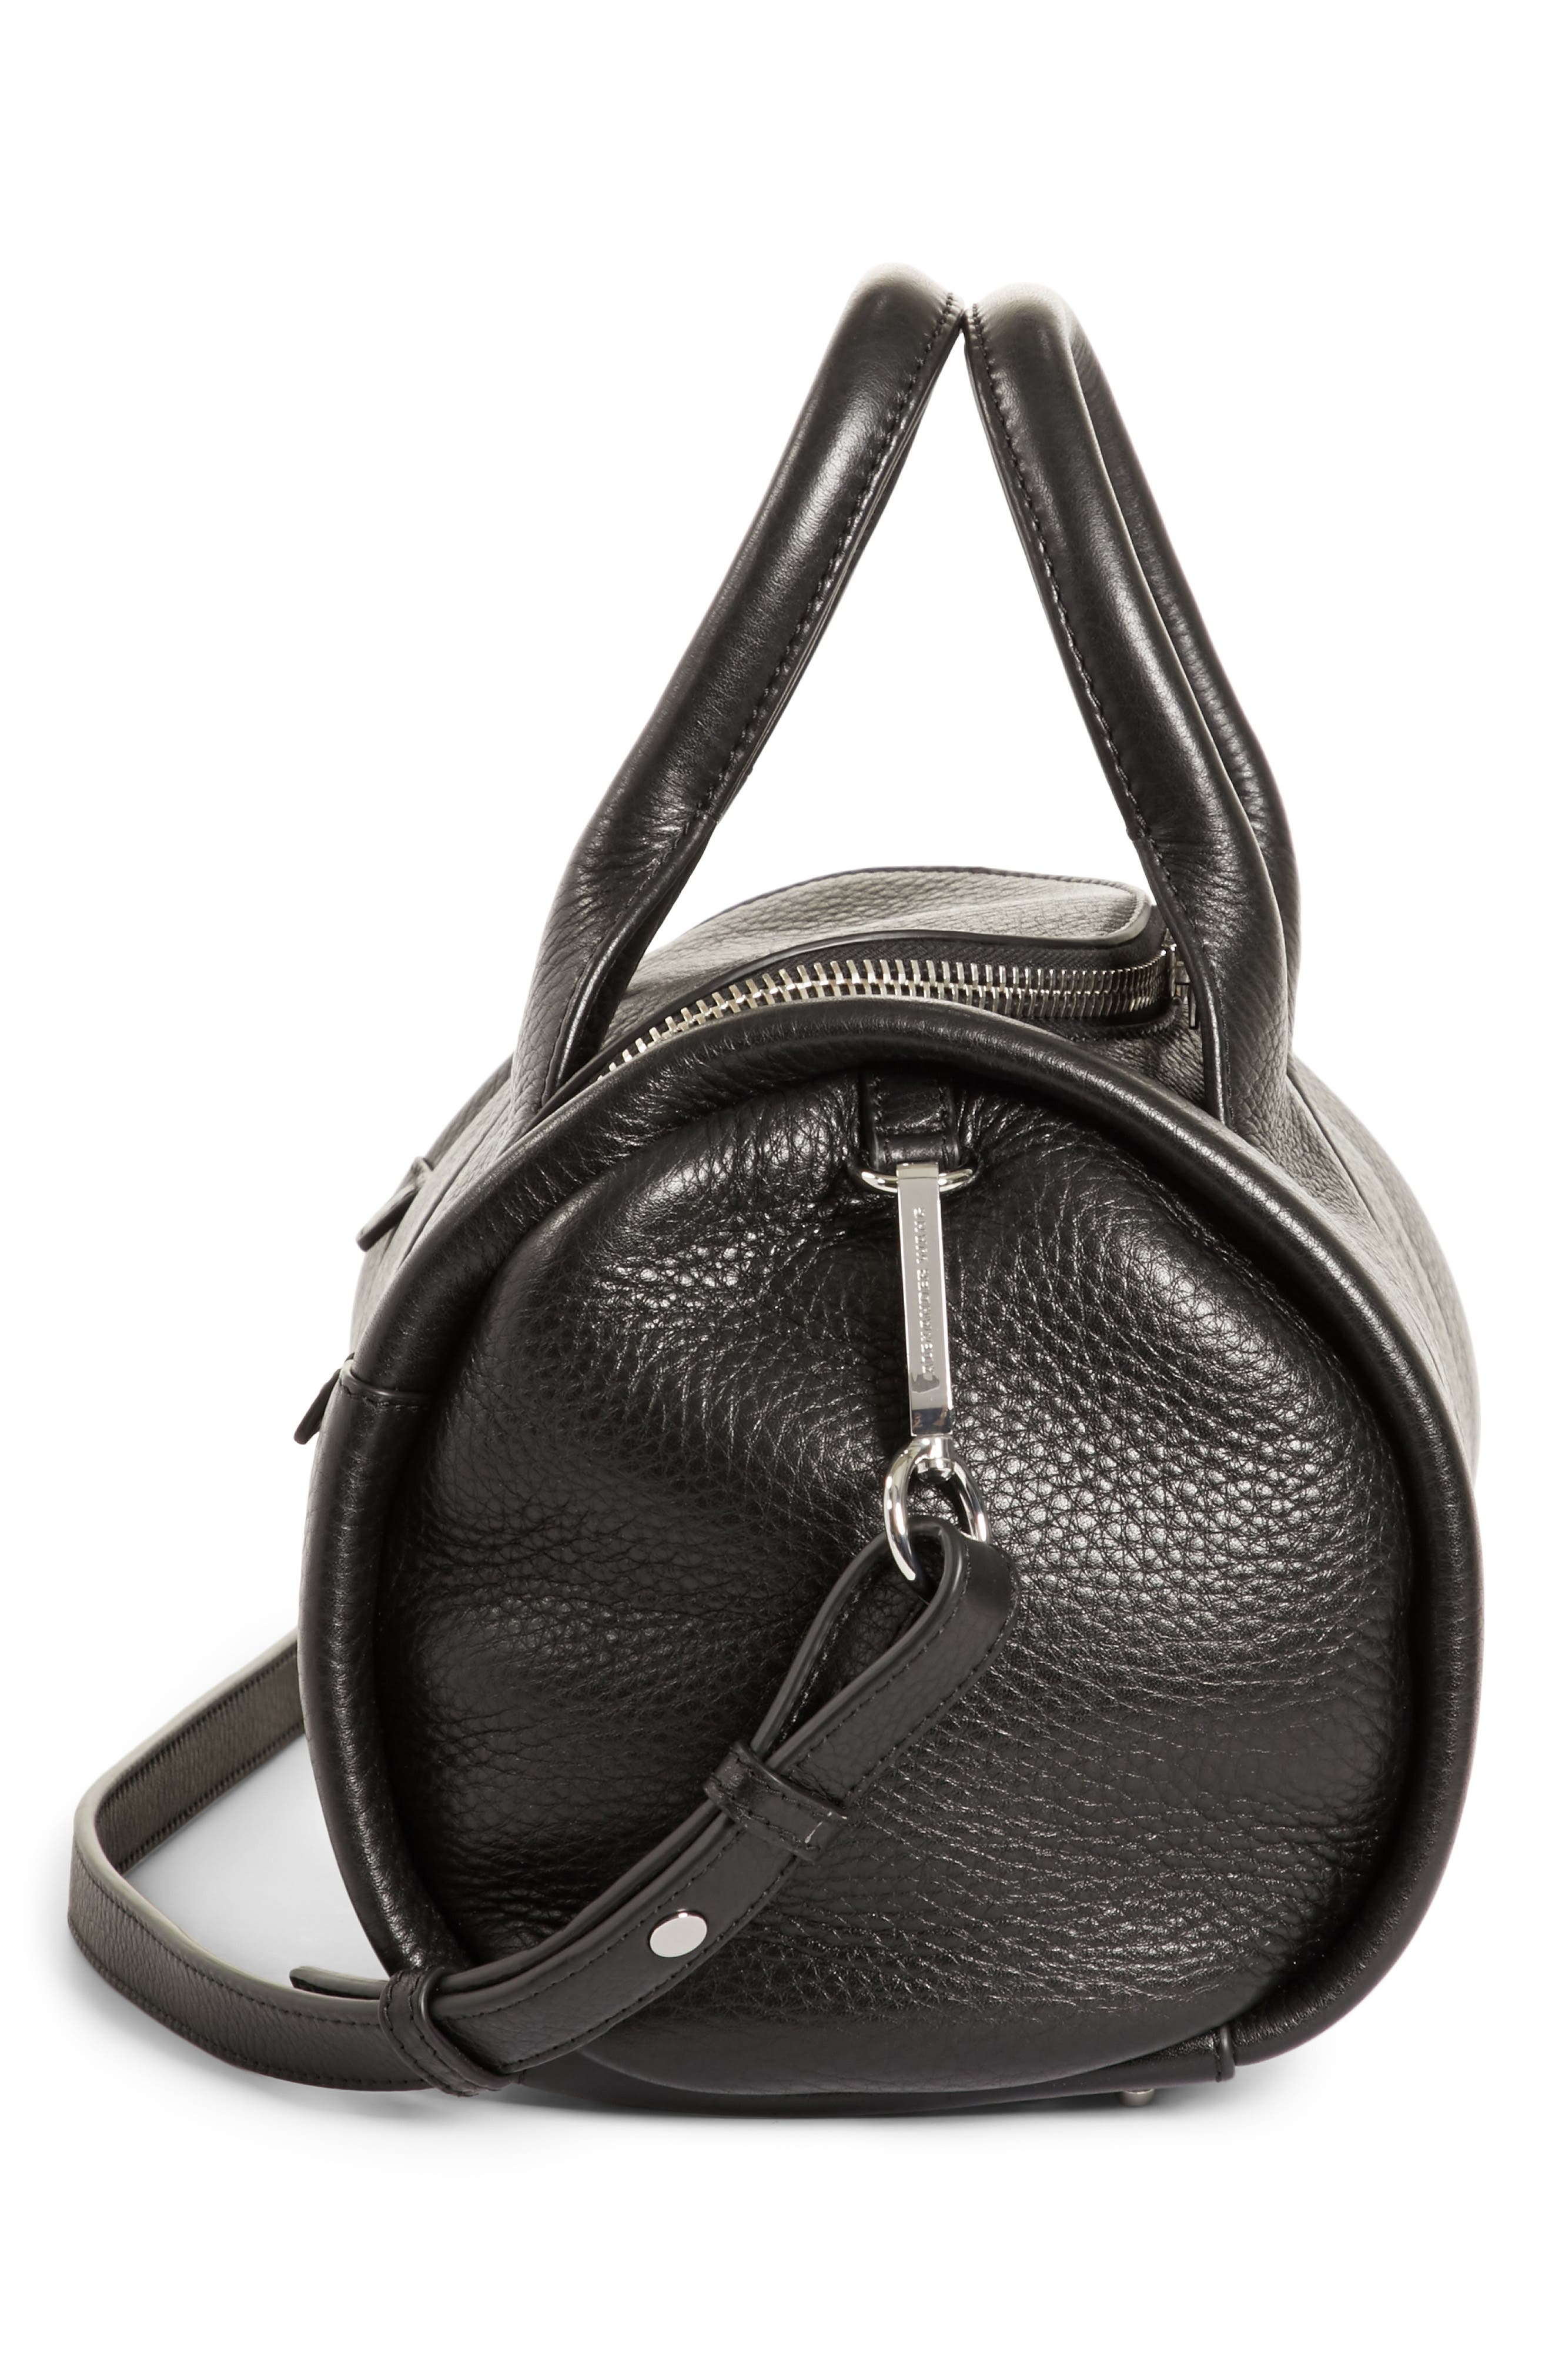 Rockie - Nickel Leather Satchel,                             Alternate thumbnail 5, color,                             001